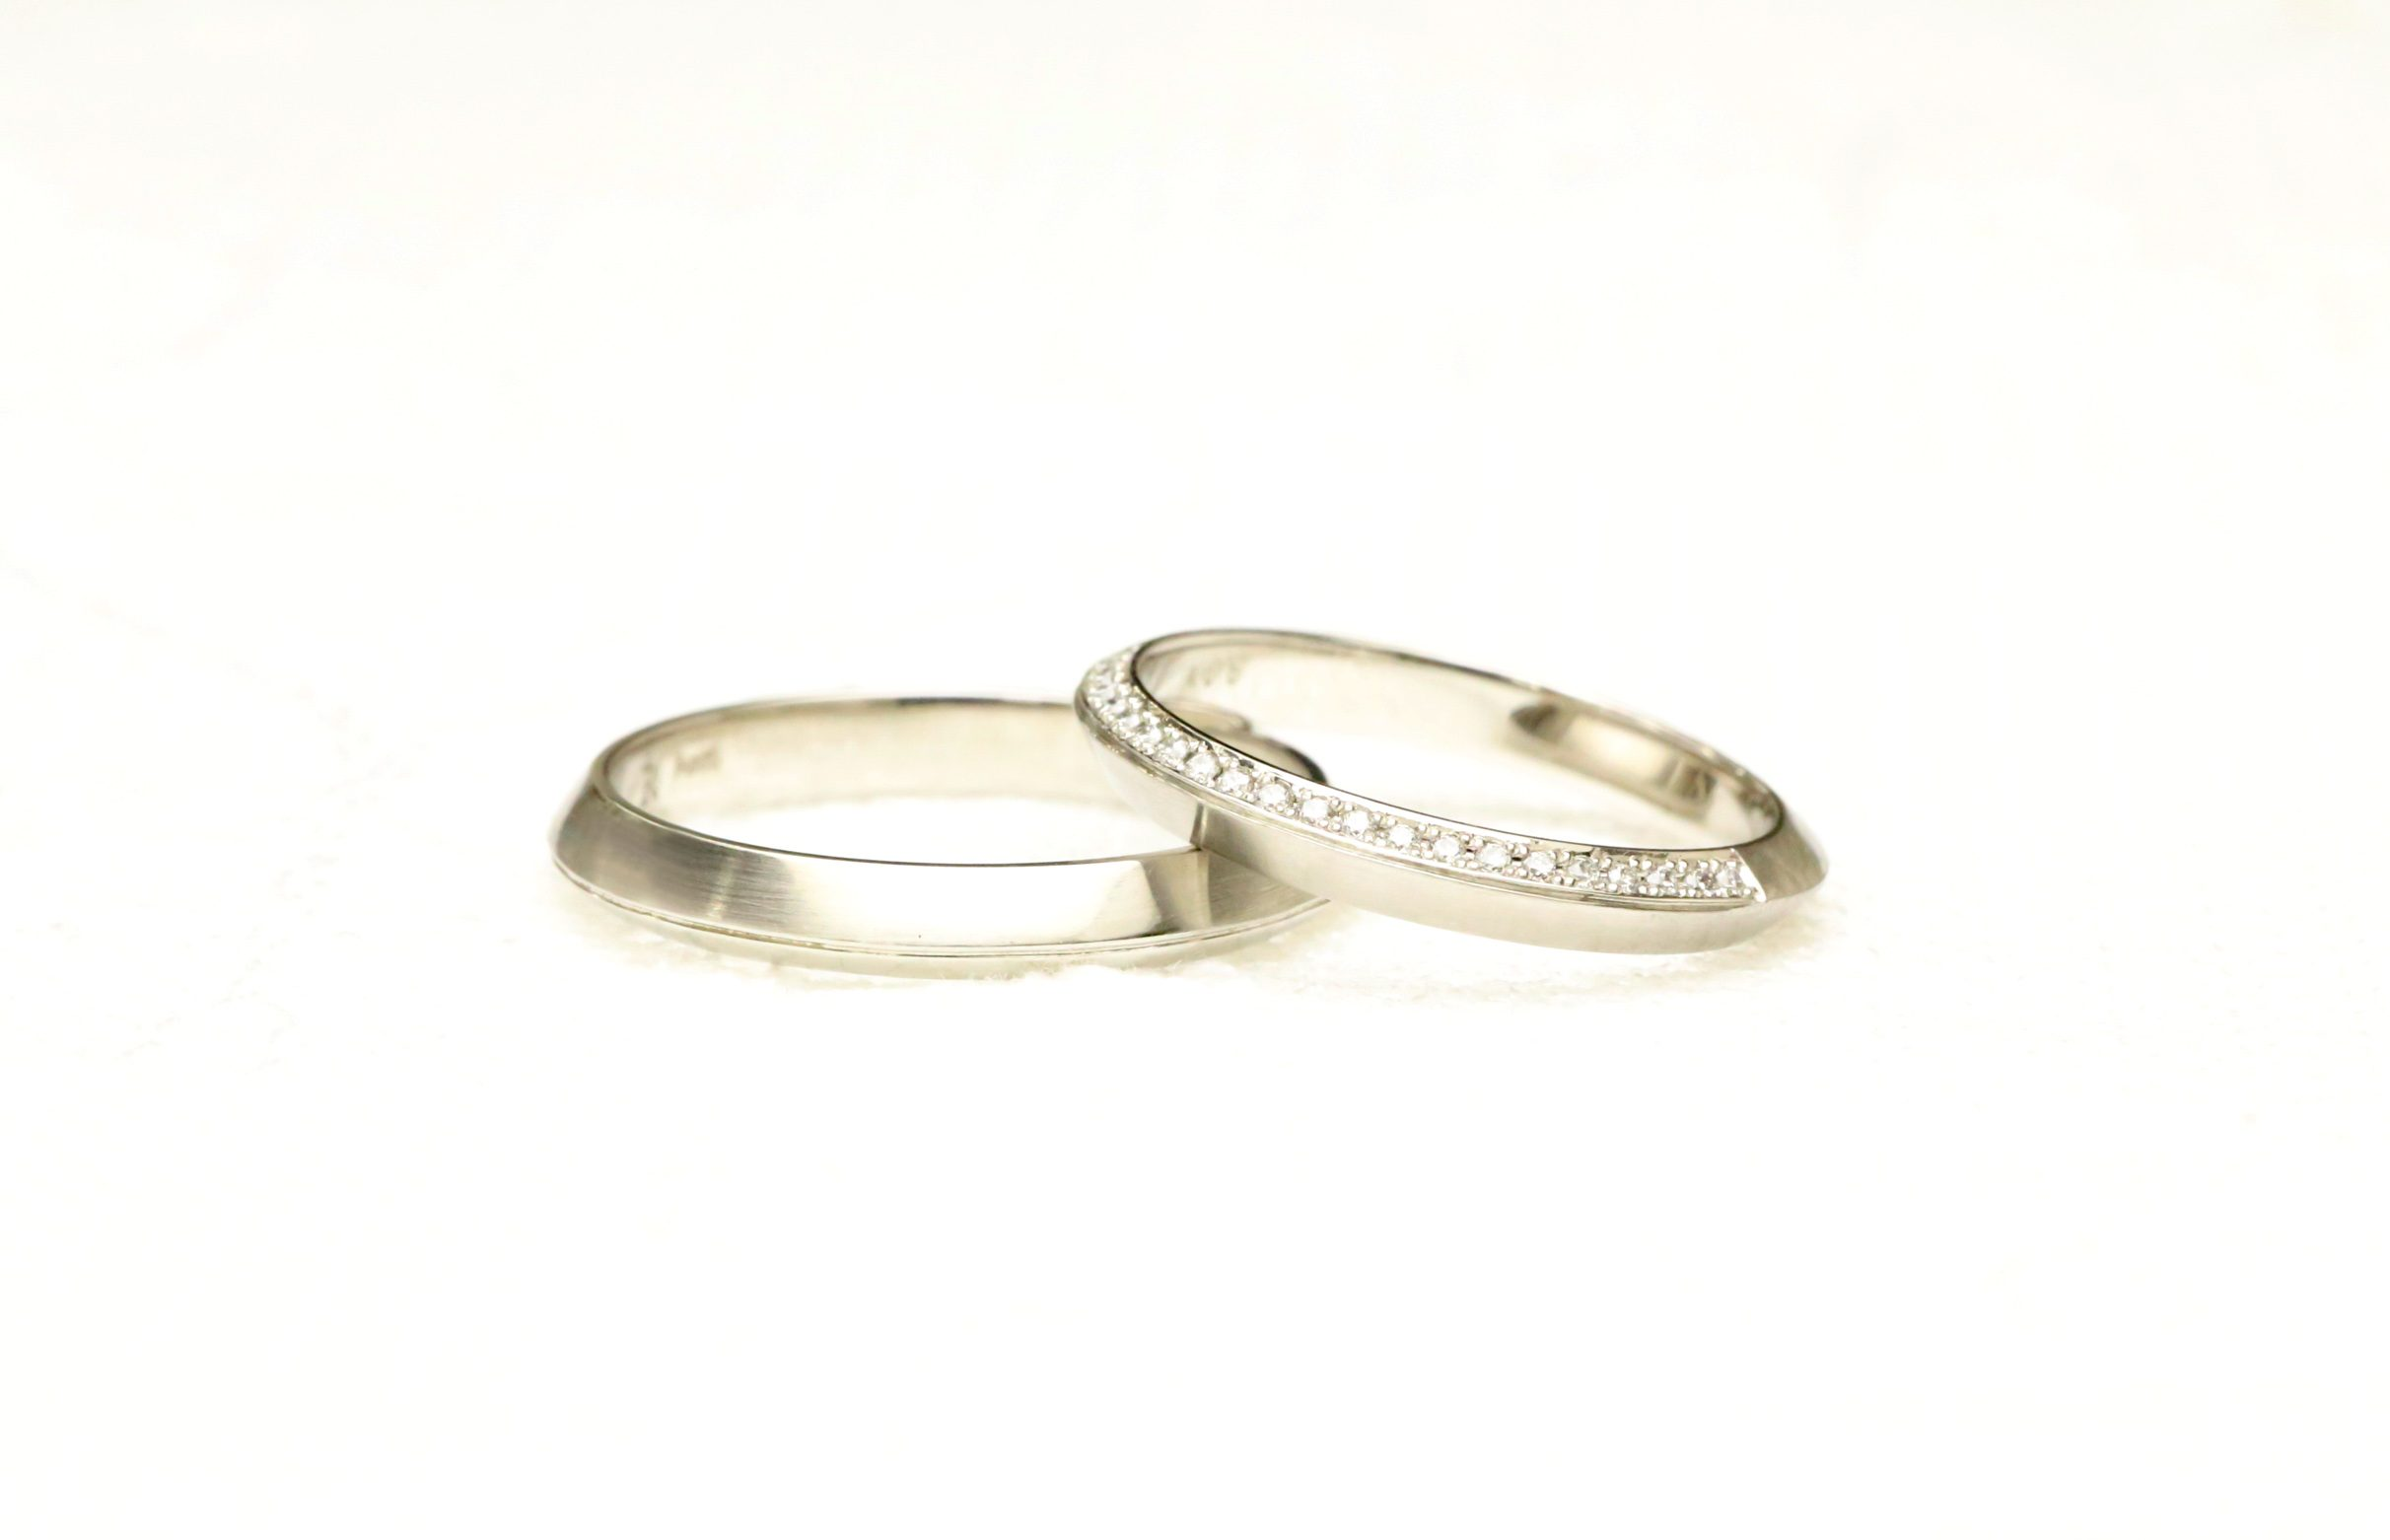 MARRIAGE RING 8